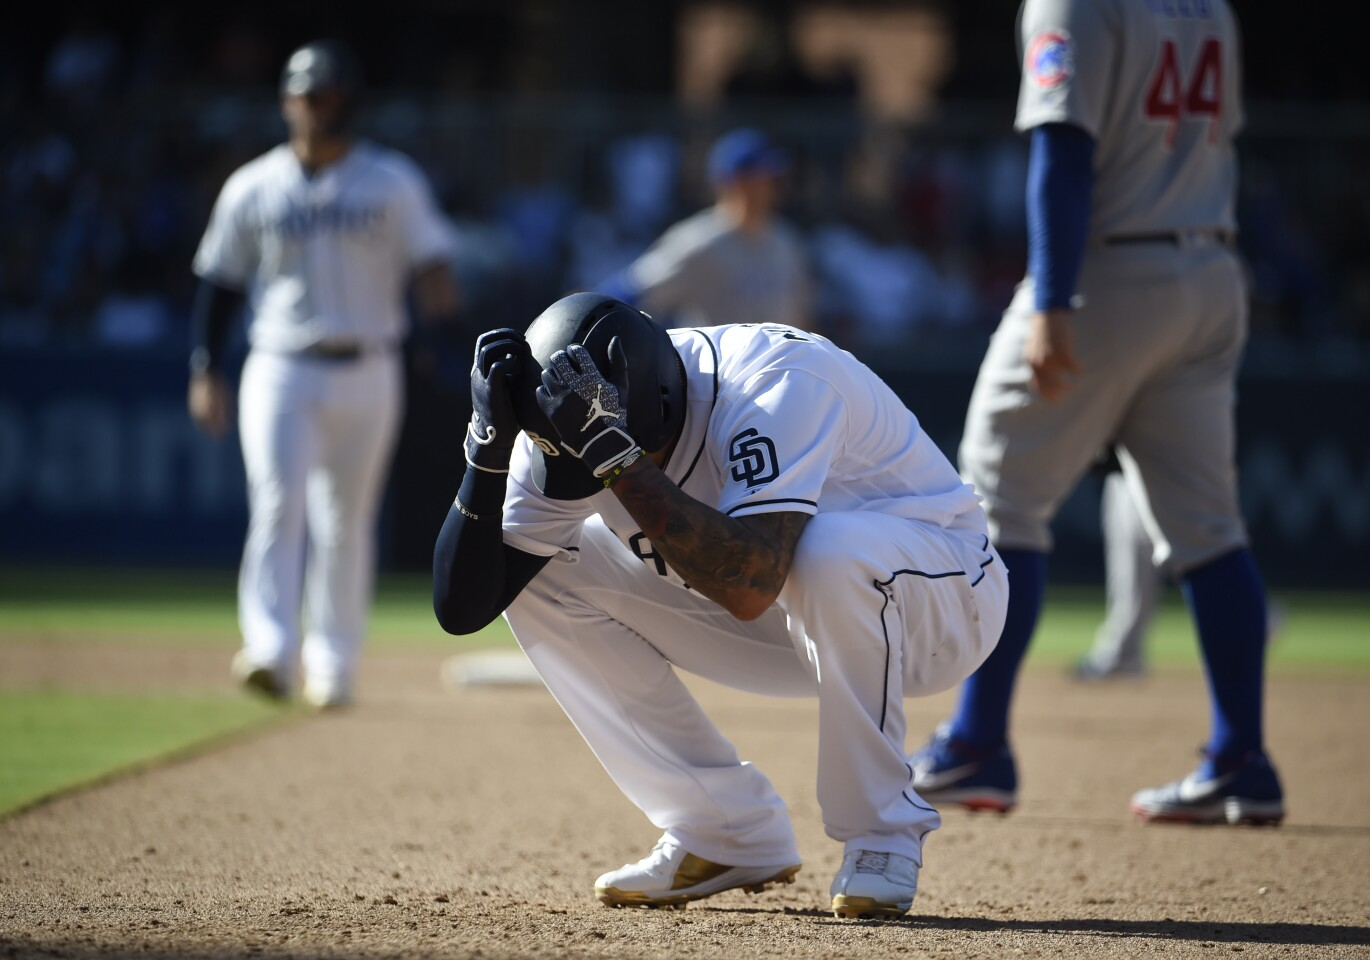 SAN DIEGO, CA - SEPTEMBER 12: Manny Machado #13 of the San Diego Padres reacts after the Padres lost the 4-1 to the Chicago Cubs in a baseball game at Petco Park September 12, 2019 in San Diego, California. (Photo by Denis Poroy/Getty Images) ** OUTS - ELSENT, FPG, CM - OUTS * NM, PH, VA if sourced by CT, LA or MoD **